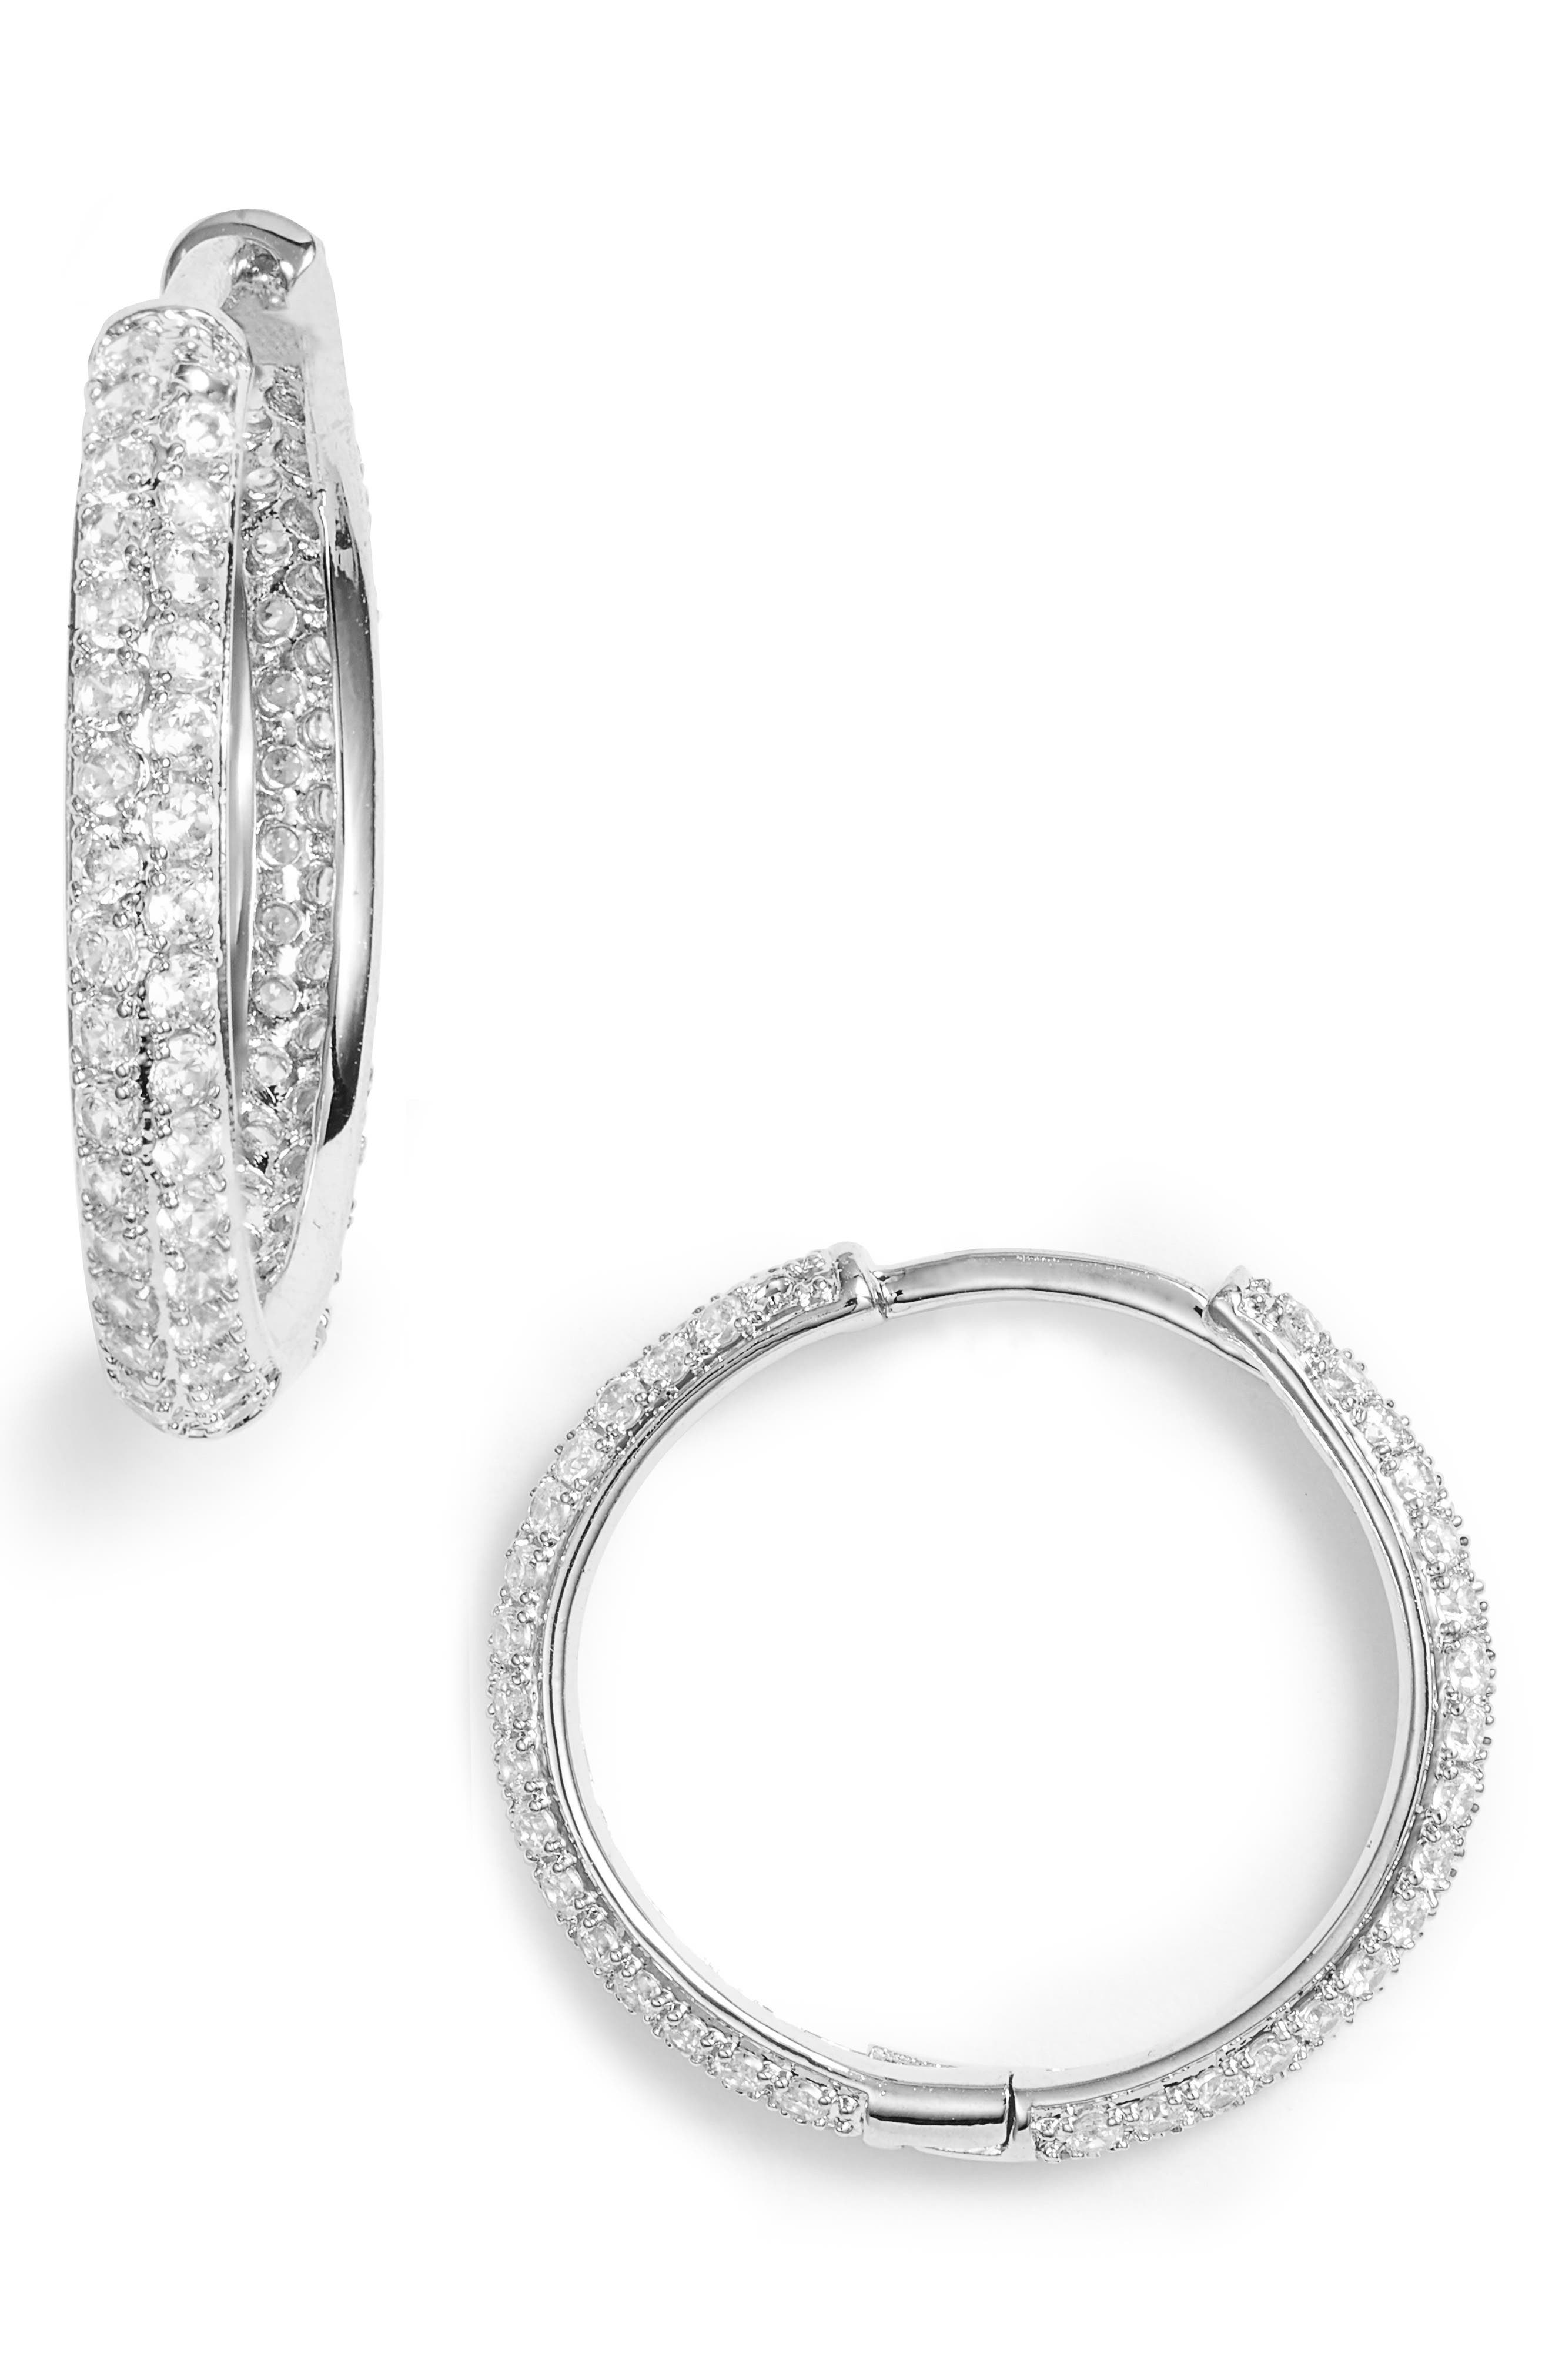 NORDSTROM, Small Pavé Hoop Earrings, Main thumbnail 1, color, CLEAR- SILVER